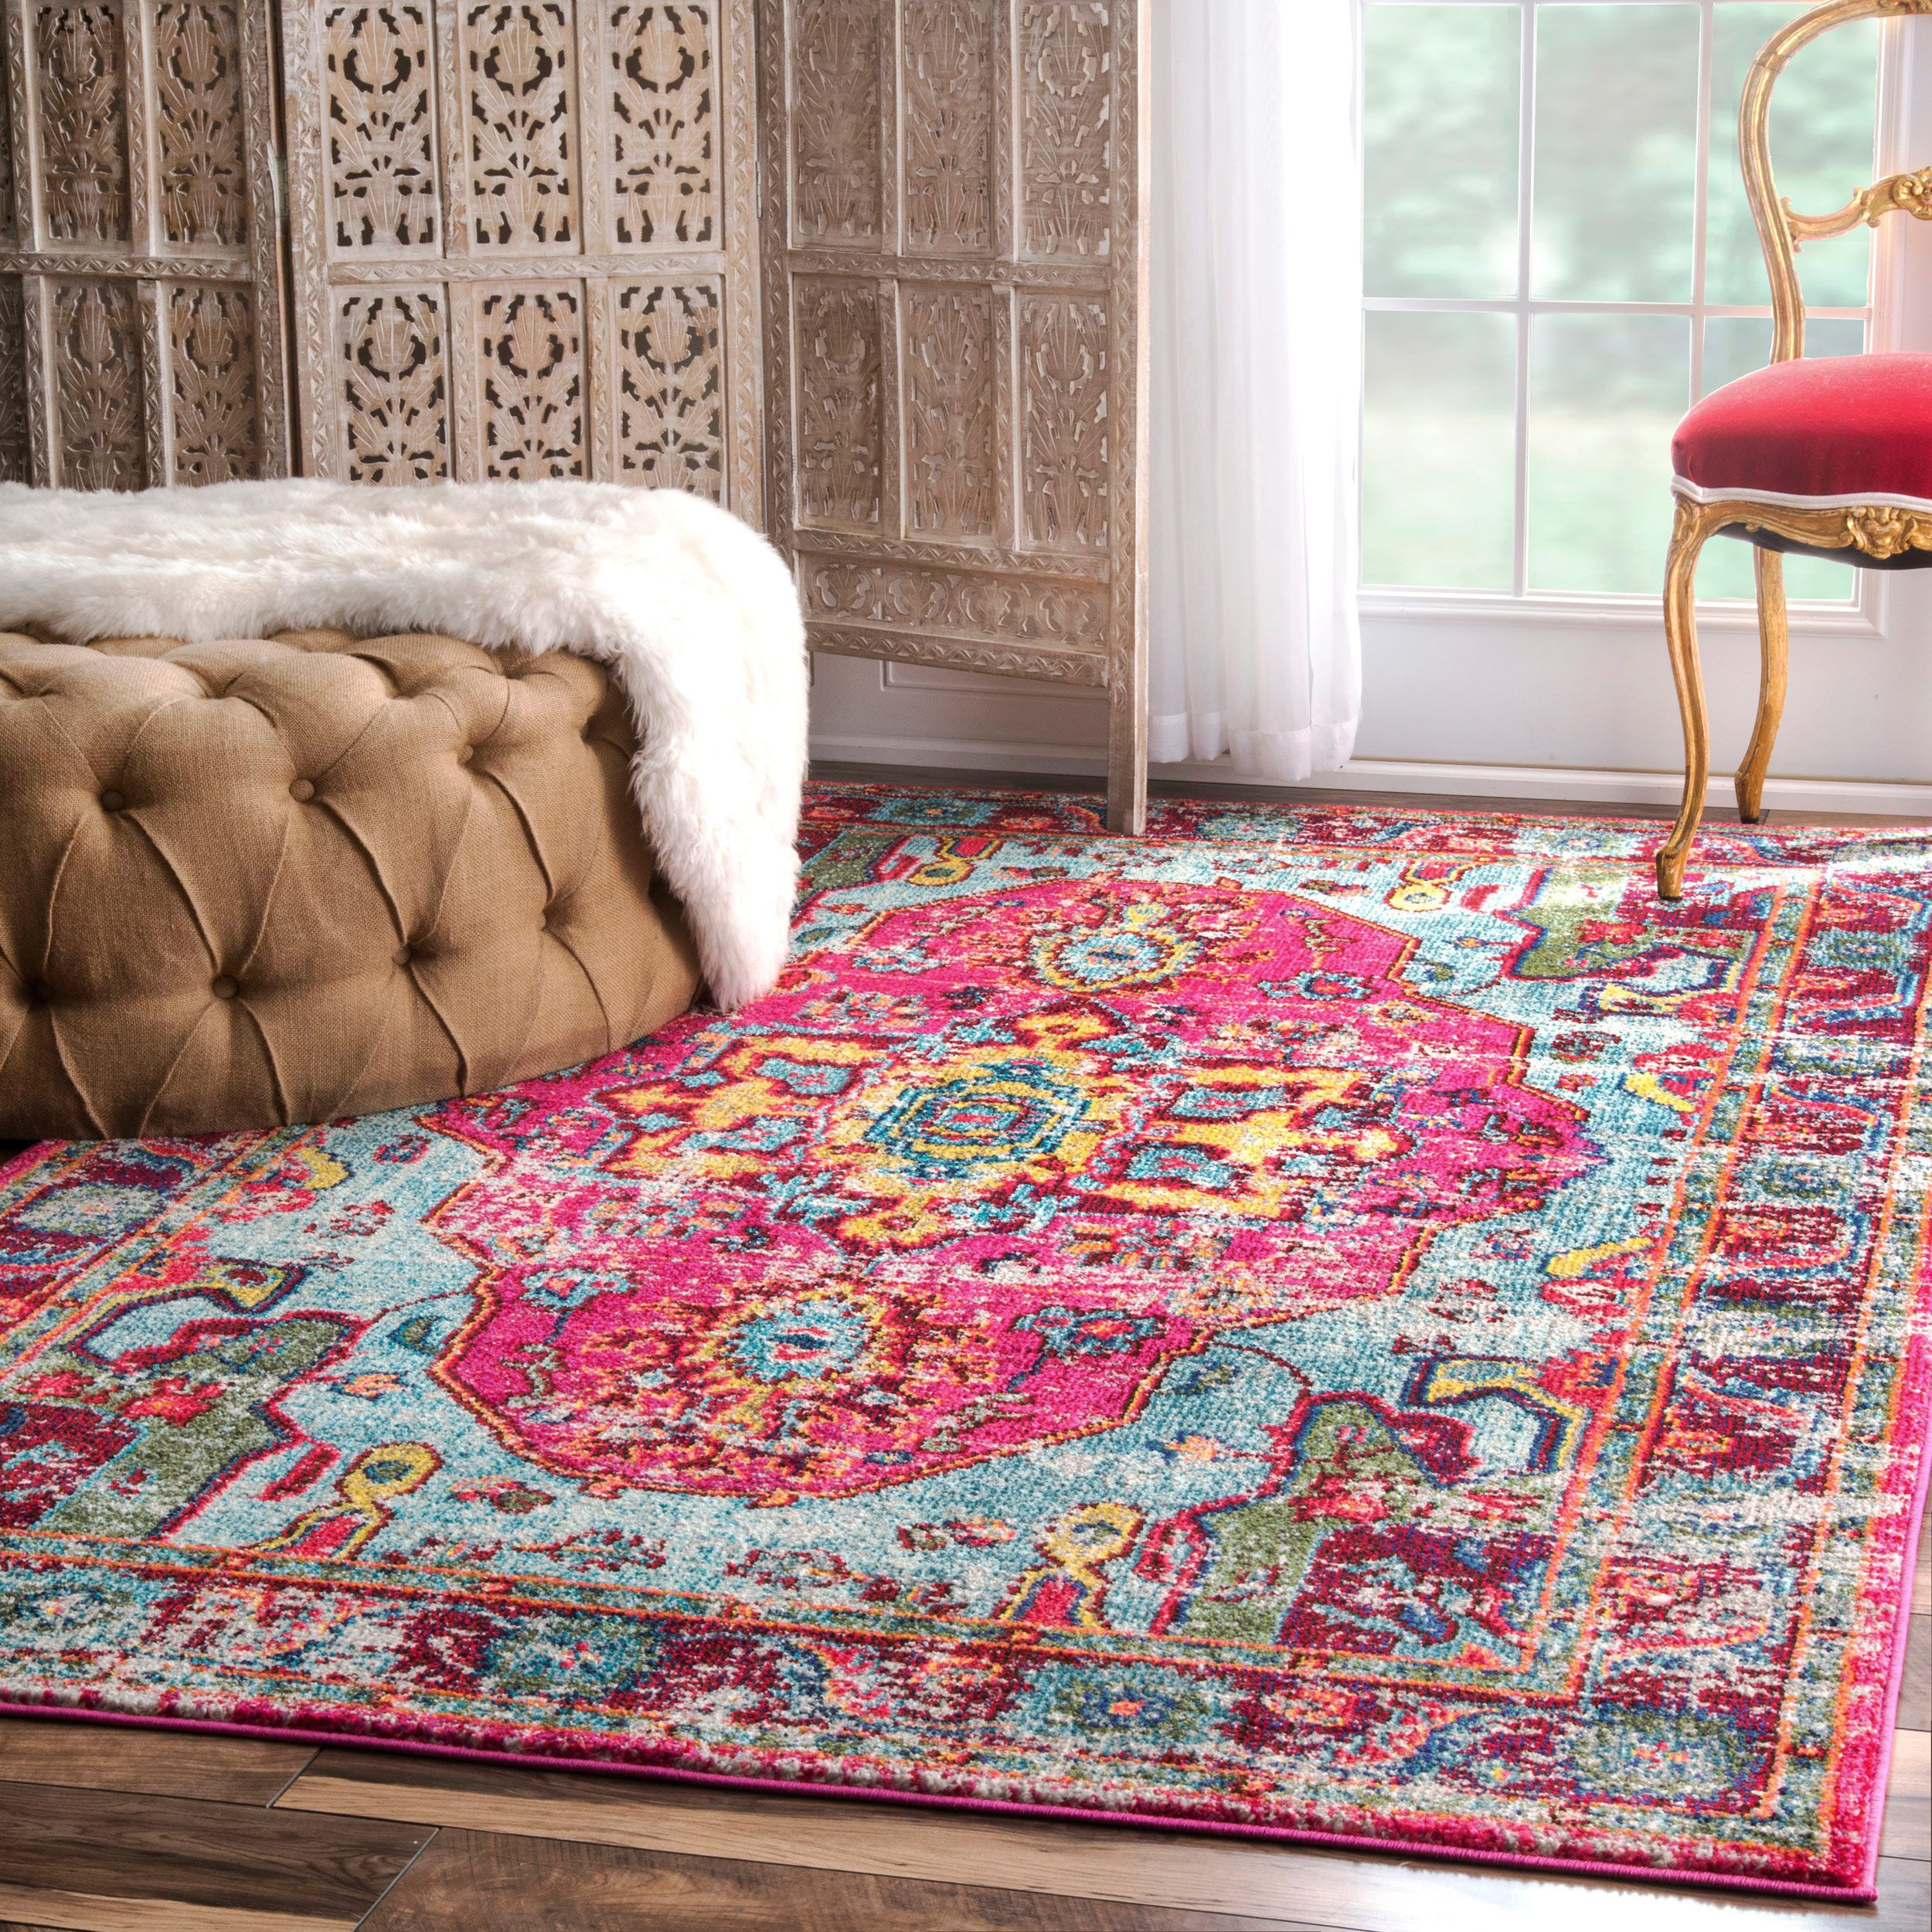 Soft And Plush The Pile On This Contemporary Area Rug Is Made From 100 Polypropylene To